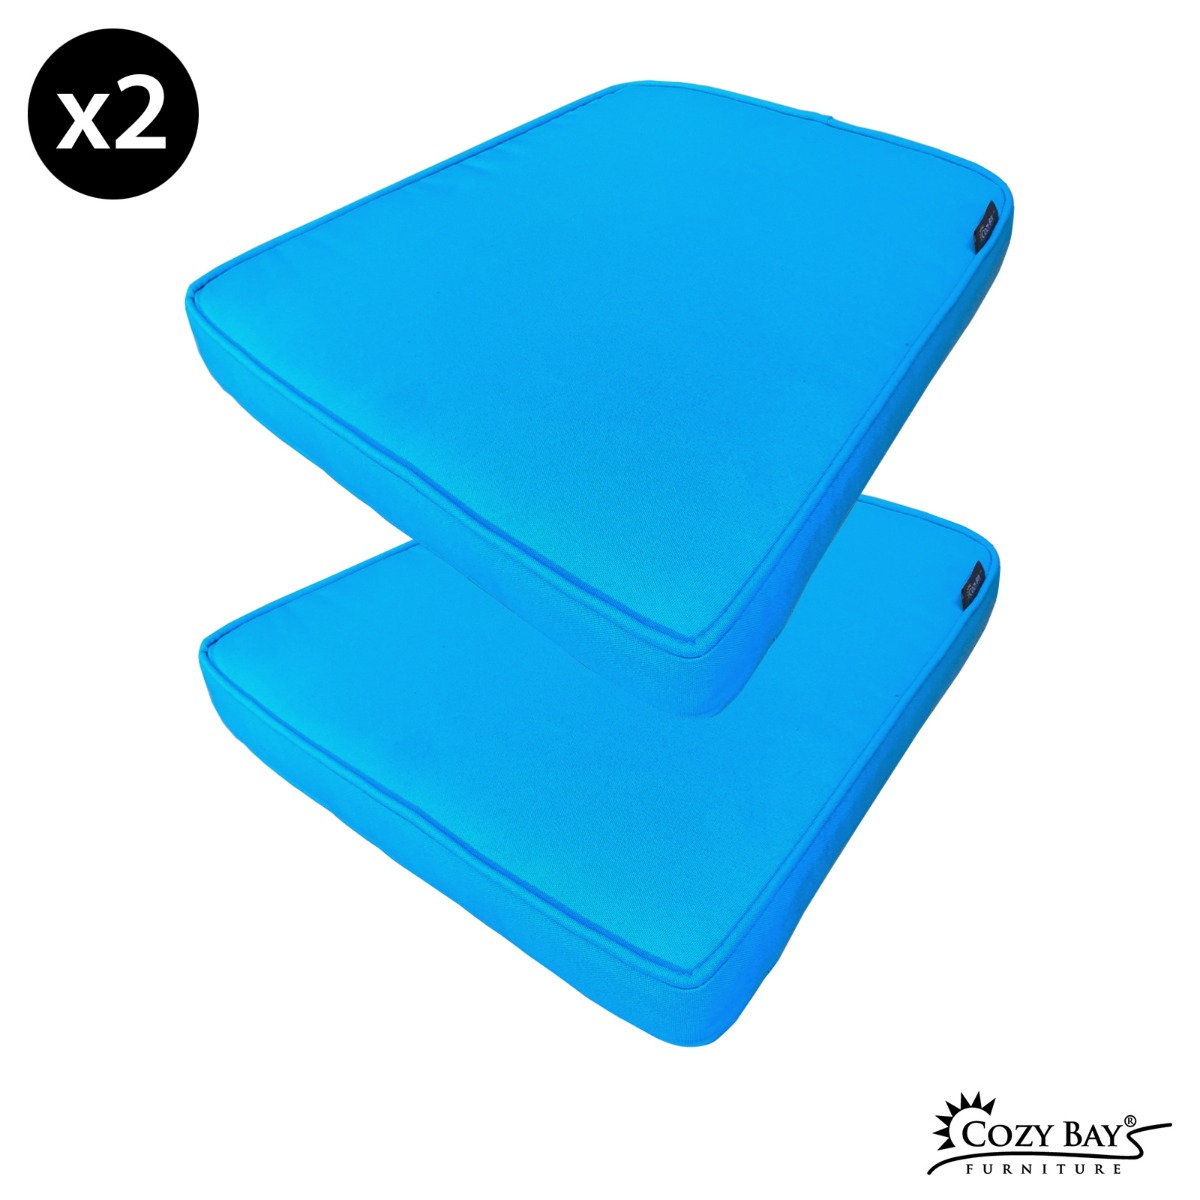 Caffe Latte Fabric Seat Pad (Set of 2) in Bright Blue